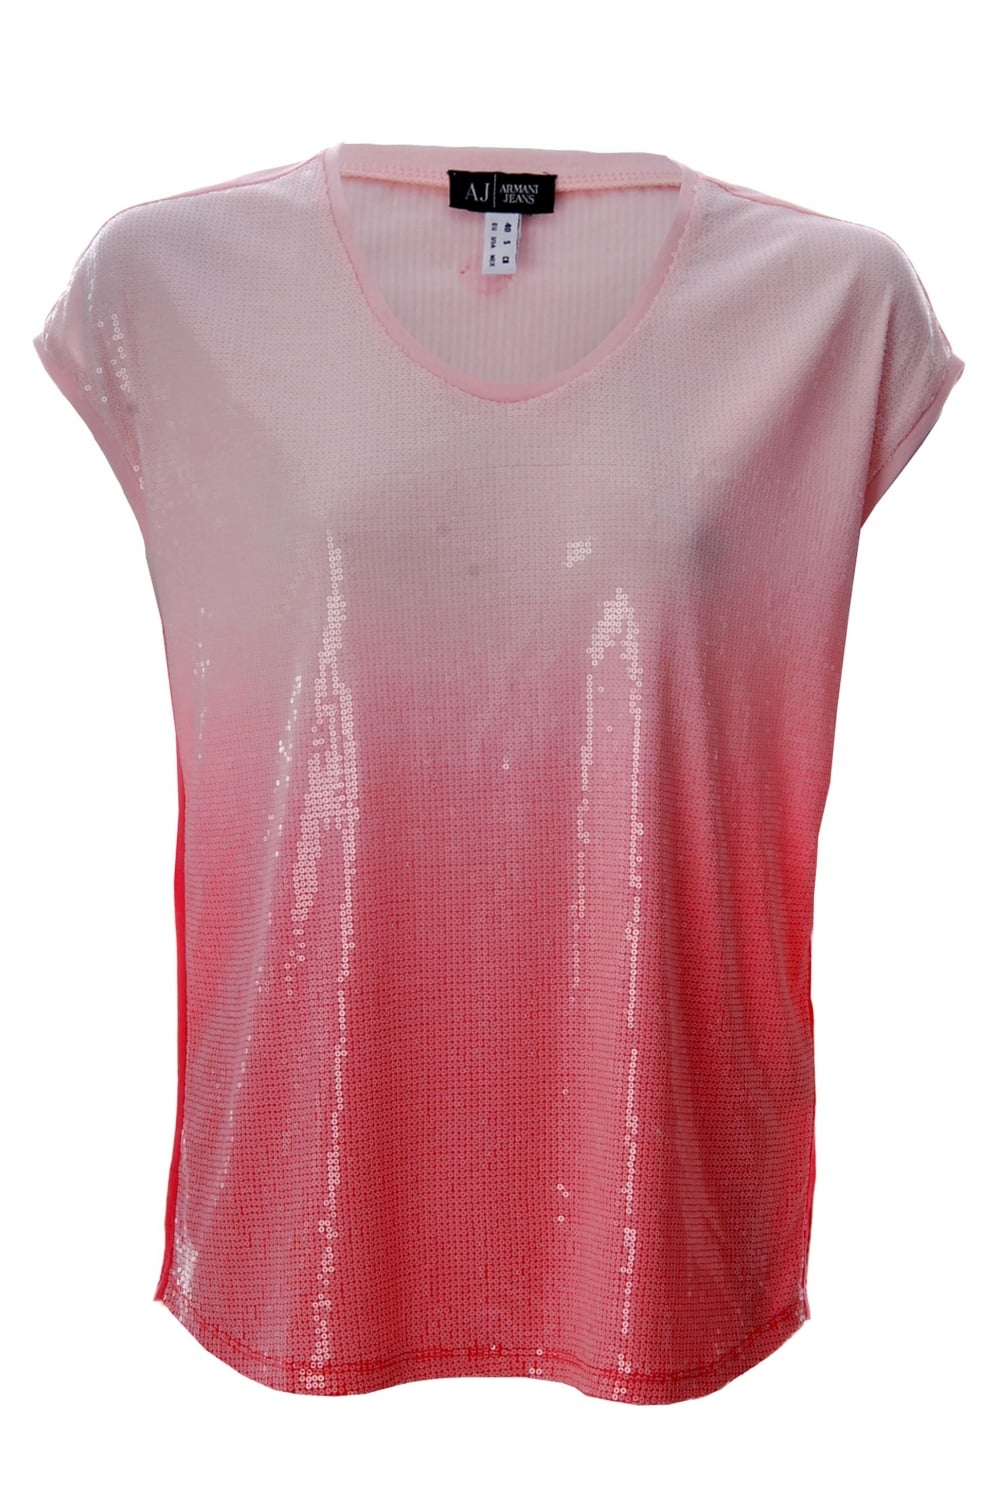 74f233ab Armani Jeans Women's Sequin T-Shirt Pink